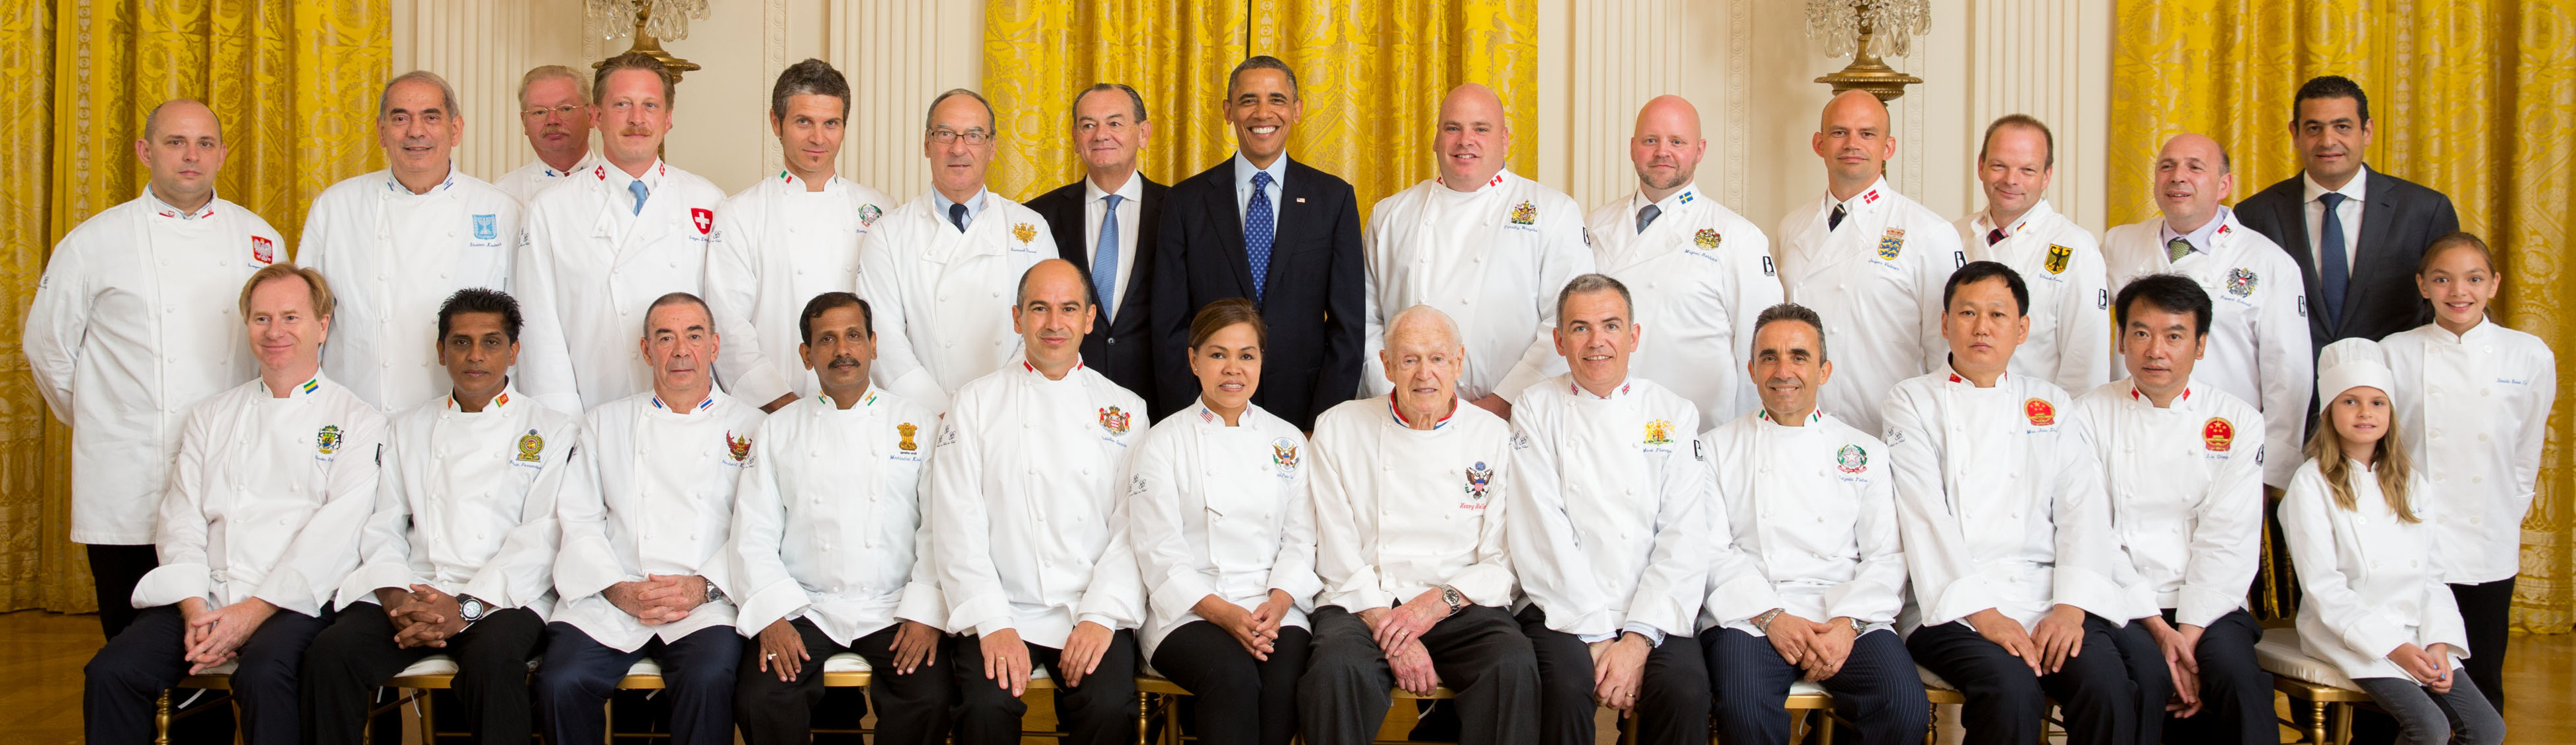 "President Barack Obama greets Le Club des Chefs des Chefs in the East Room of the White House, Aug. 1, 2013. Attendees: Cristeta ""Cris"" Pasia Comerford, Chef to President Barack Obama of the United States of America; Christian Garcia, Club President, Chef to His Highness Prince Albert II of Monaco; Mark Flanagan, Club Vice President, Chef to Her Majesty Queen Elizabeth II of Great Britain; Machindra Kasture, Chef to President Pranab Kumar Mukherjee of India; Jesper Vollmer, Chef to Her Majesty the Queen Margrethe II of Denmark; Timothy Wasylko, Chef to Prime Minister Stephen Harper of Canada; Bernard Vaussion, Chef to President Franois Hollande of France; Ulrich Kerz, Chef to Federal Chancellor Angela Merkel of Germany; Gregor Zimmermann, Chef in charge of the official receptions of Switzerland; Catzola Pietro and Santangelo Giovanni, Chefs to President Giorgio Napolitano and the Quirinale Palace (Italy); Anton Brinsley Rohan Fernandopulle, Chef in charge of official receptions of Sri Lanka; The Great Hall of the People in Beijing - Represented by two of its chefs (China); Shalom Kadosh, Chef in charge of the Official Receptions of Israel; Norbert Kostner, Chef in charge of official receptions of His Majesty King Bhumibol Adulyadej of Thailand; Isto Tahvanainen, Chef to President Sauli Niinistš of the Republic of Finland; Grzegorz Rzeszotarski, Chef to President Bronisaw Komorowski of Republic of Poland; Rupert Schnait, Chef in charge of the official receptions of Austria; Charles Ferrier Richardson, Chef to President Ali Bongo Ondimba of Gabon. (Official White House Photo by Chuck Kennedy) This photograph is provided by THE WHITE HOUSE as a courtesy and may be printed by the subject(s) in the photograph for personal use only. The photograph may not be manipulated in any way and may not otherwise be reproduced, disseminated or broadcast, without the written permission of the White House Photo Office. This photograph may not be used in any commercial or political materials, advertisements, emails, products, promotions that in any way suggests approval or endorsement of the President, the First Family, or the White House."